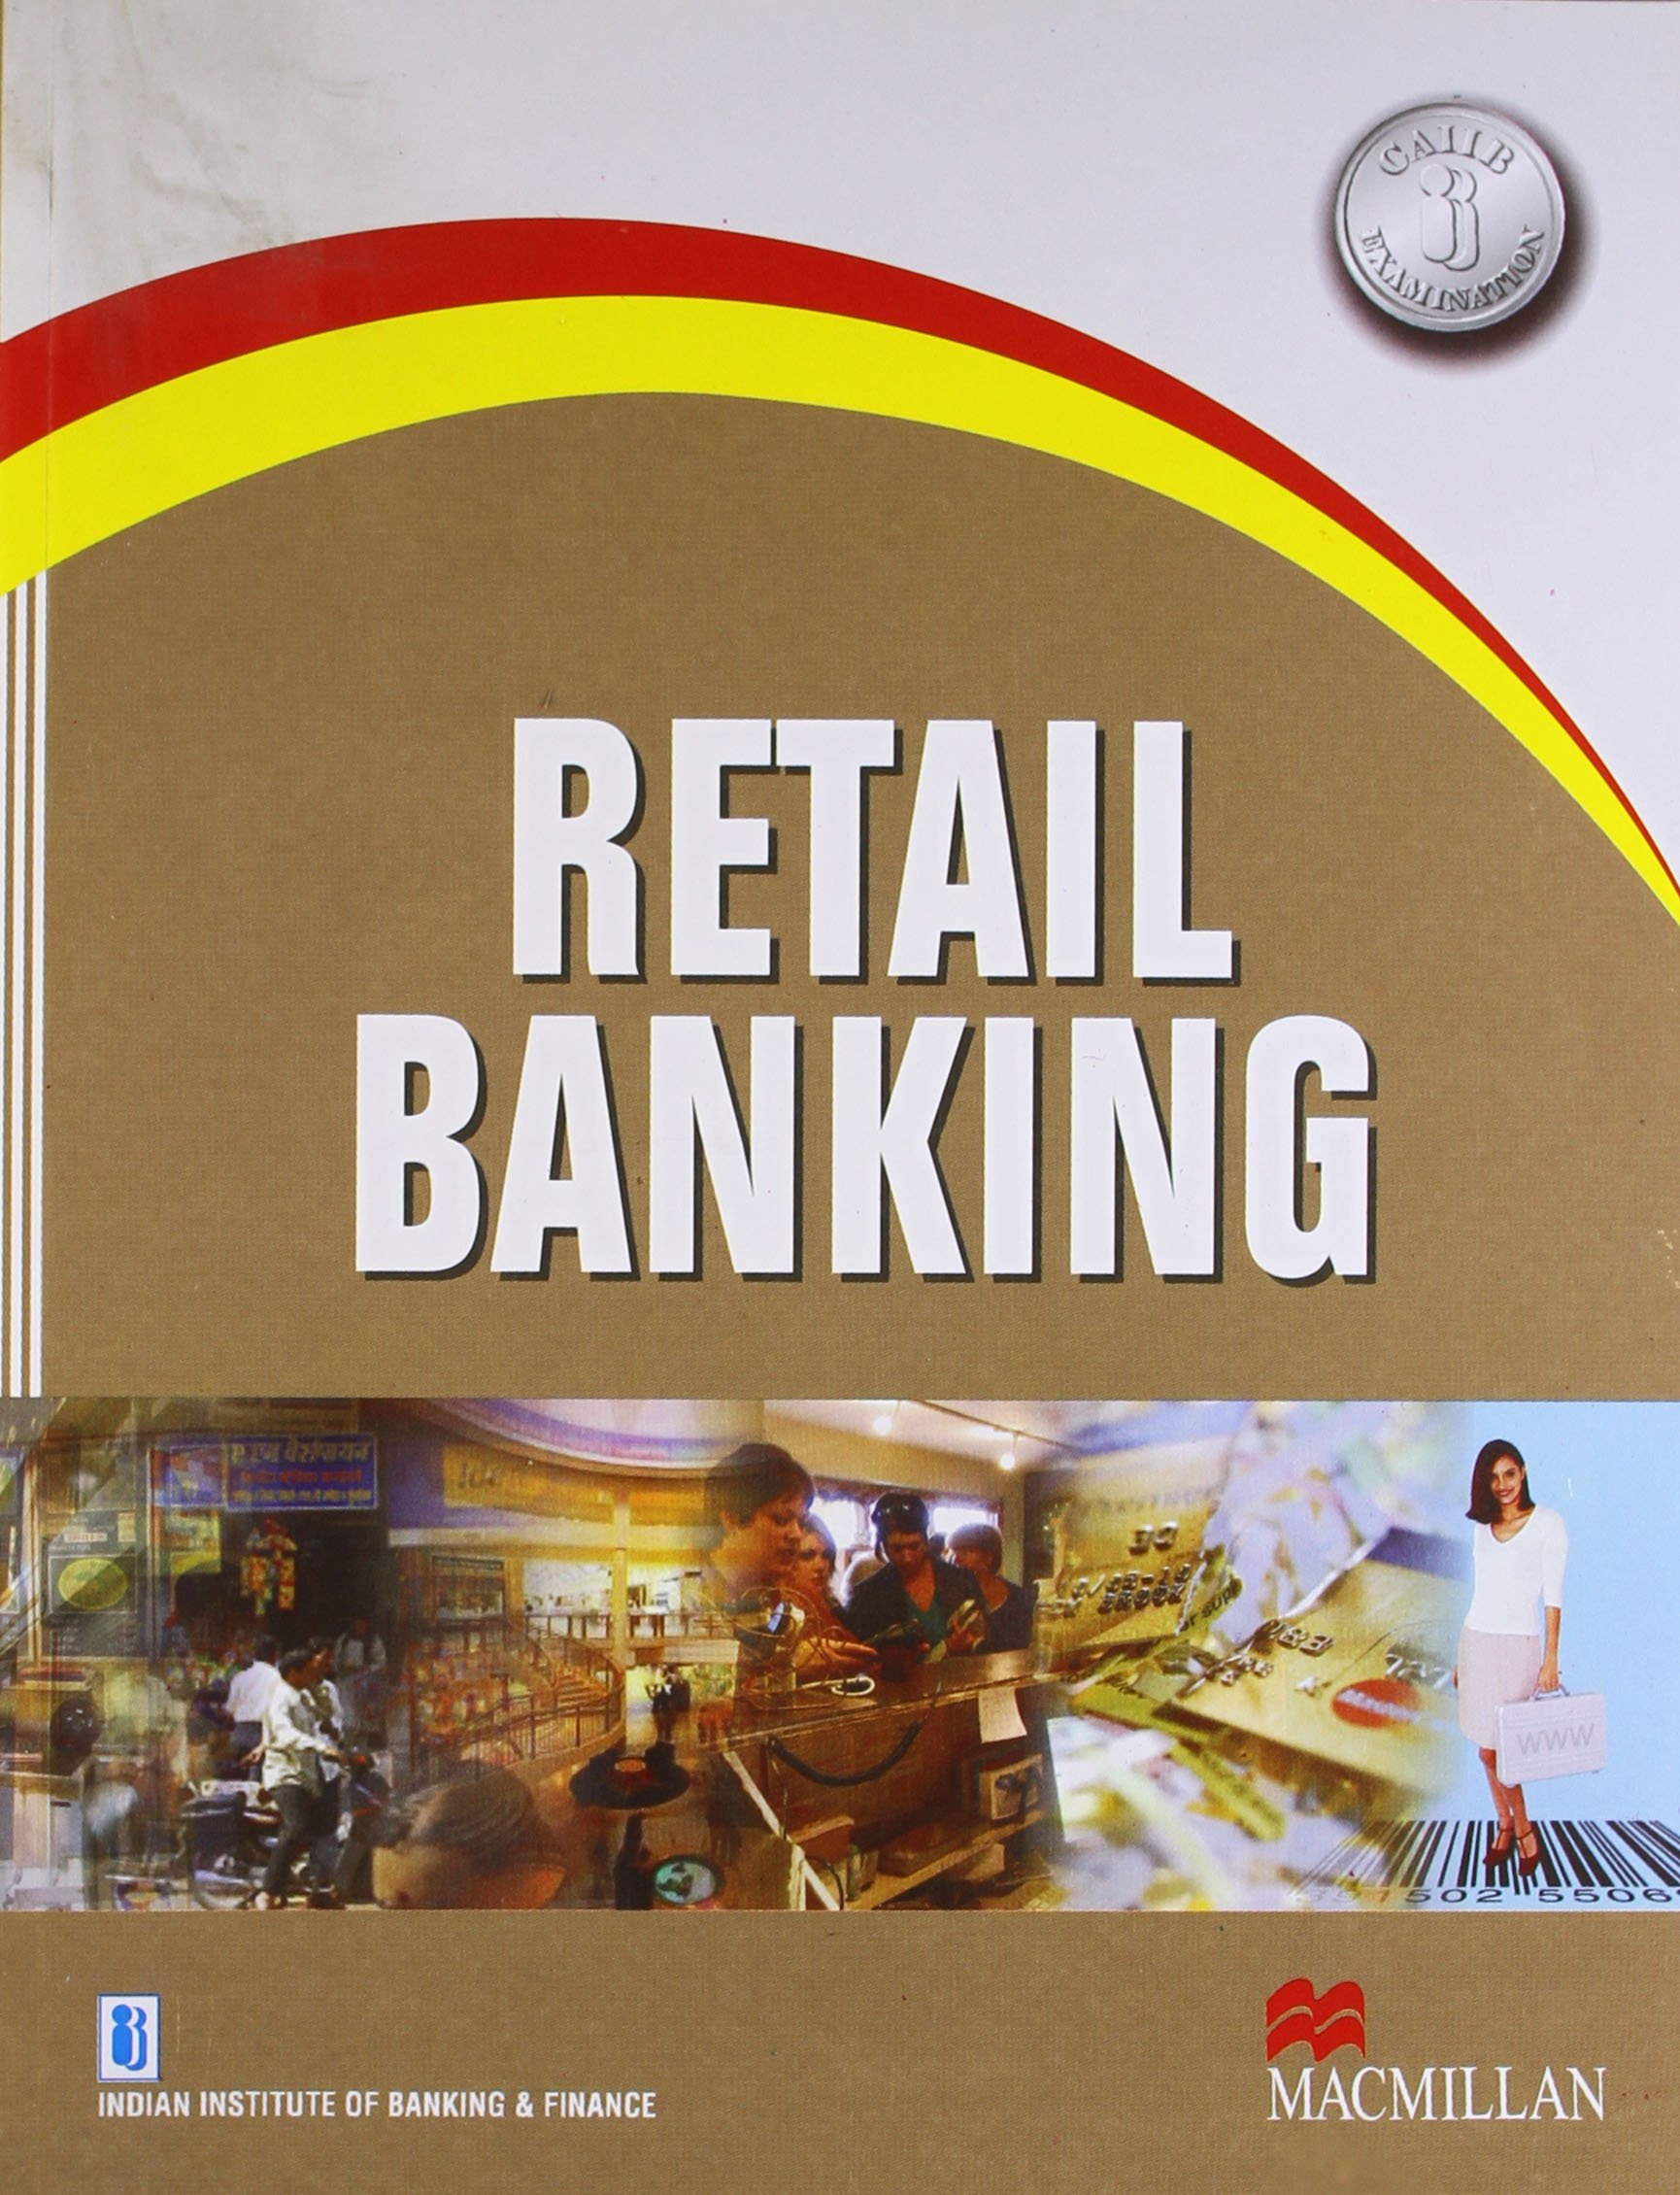 Retail banking for caiib examination amazon iibf indian retail banking for caiib examination amazon iibf indian institute of banking and finance books fandeluxe Images